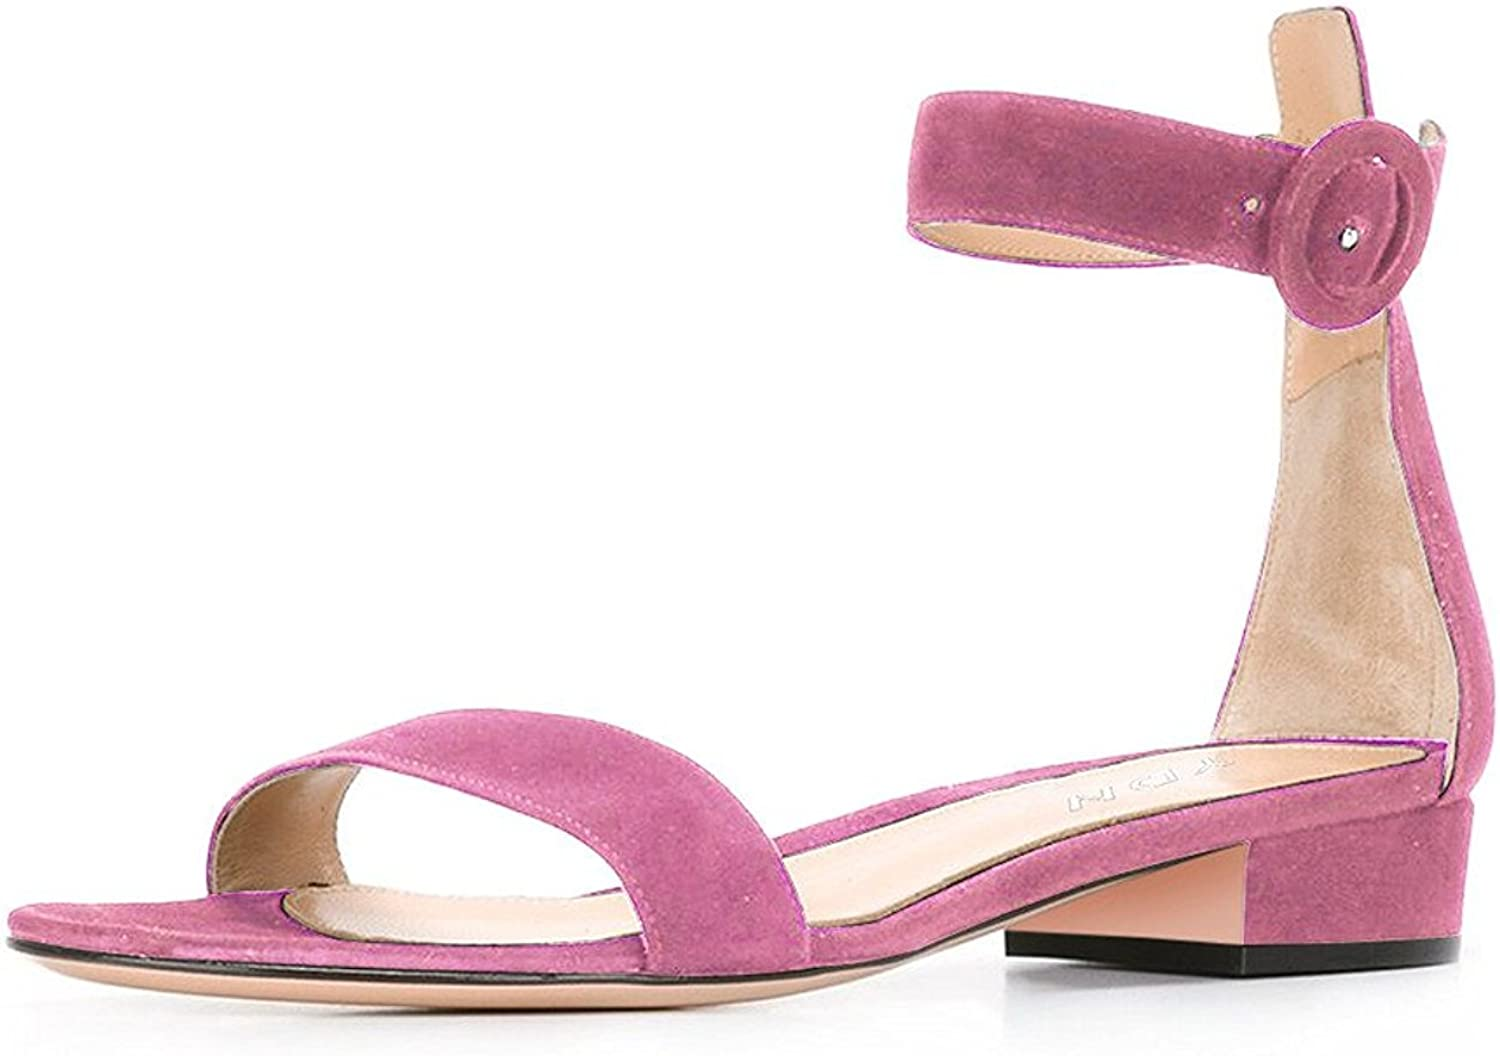 YDN Women Low Heeled Ankle Strap Sandals Open Toe Block Flat shoes with Buckle